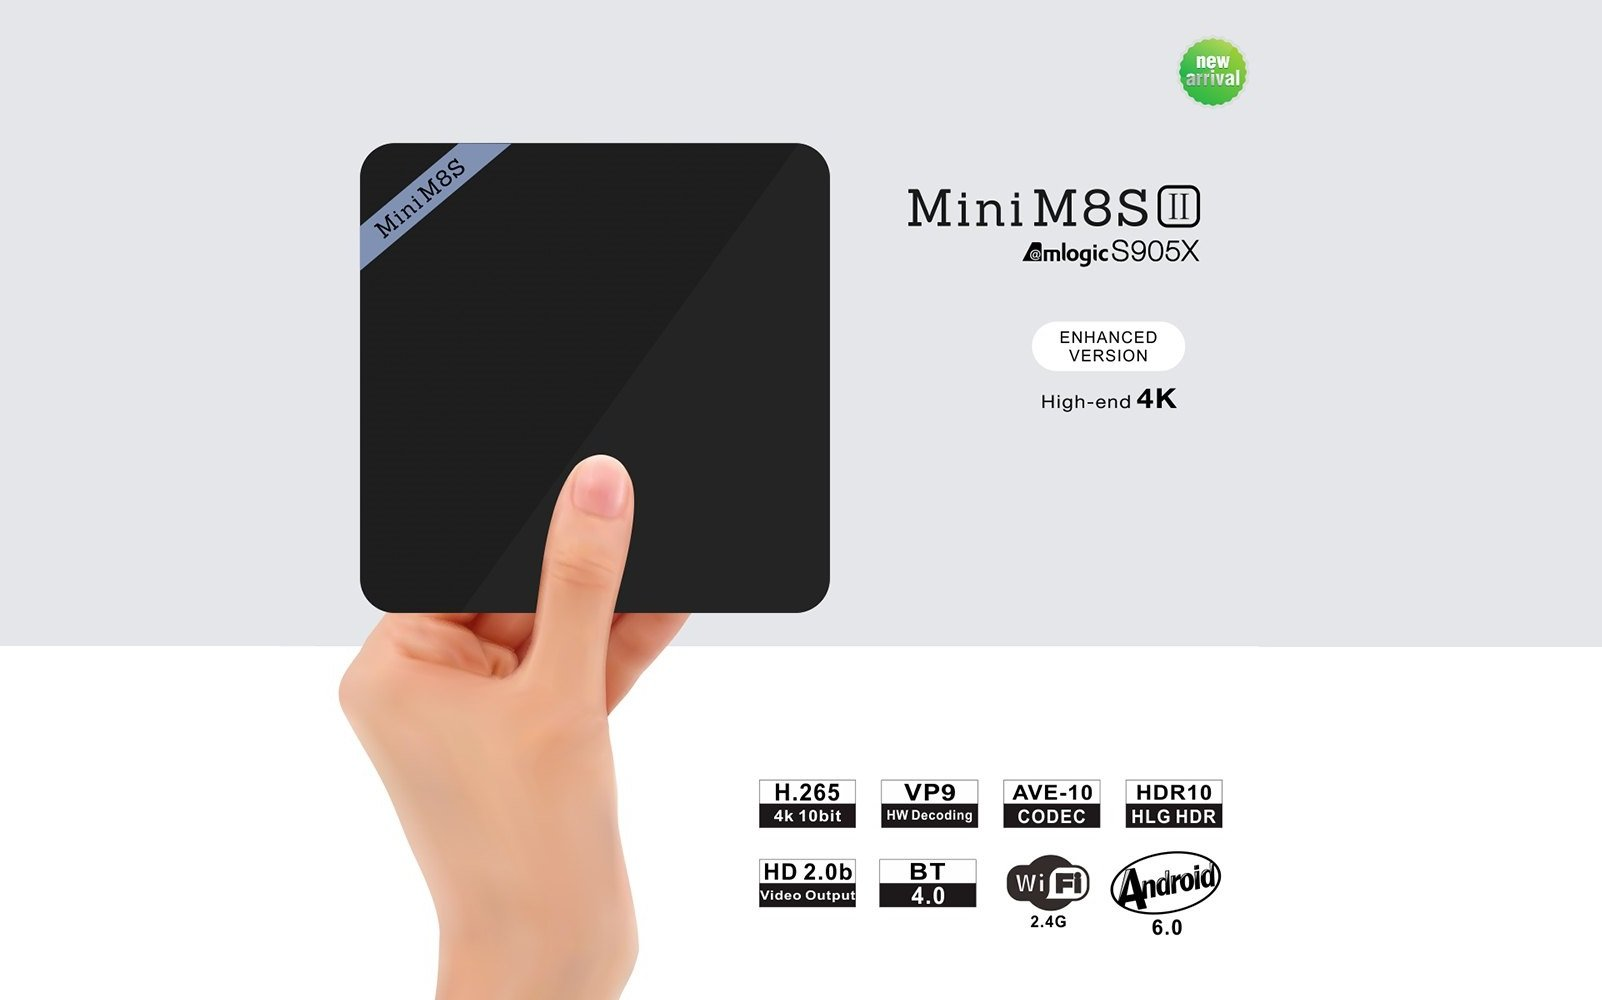 Mini M8S II 4K TV Box on offer at 32 Euro on GearBest | Coupon